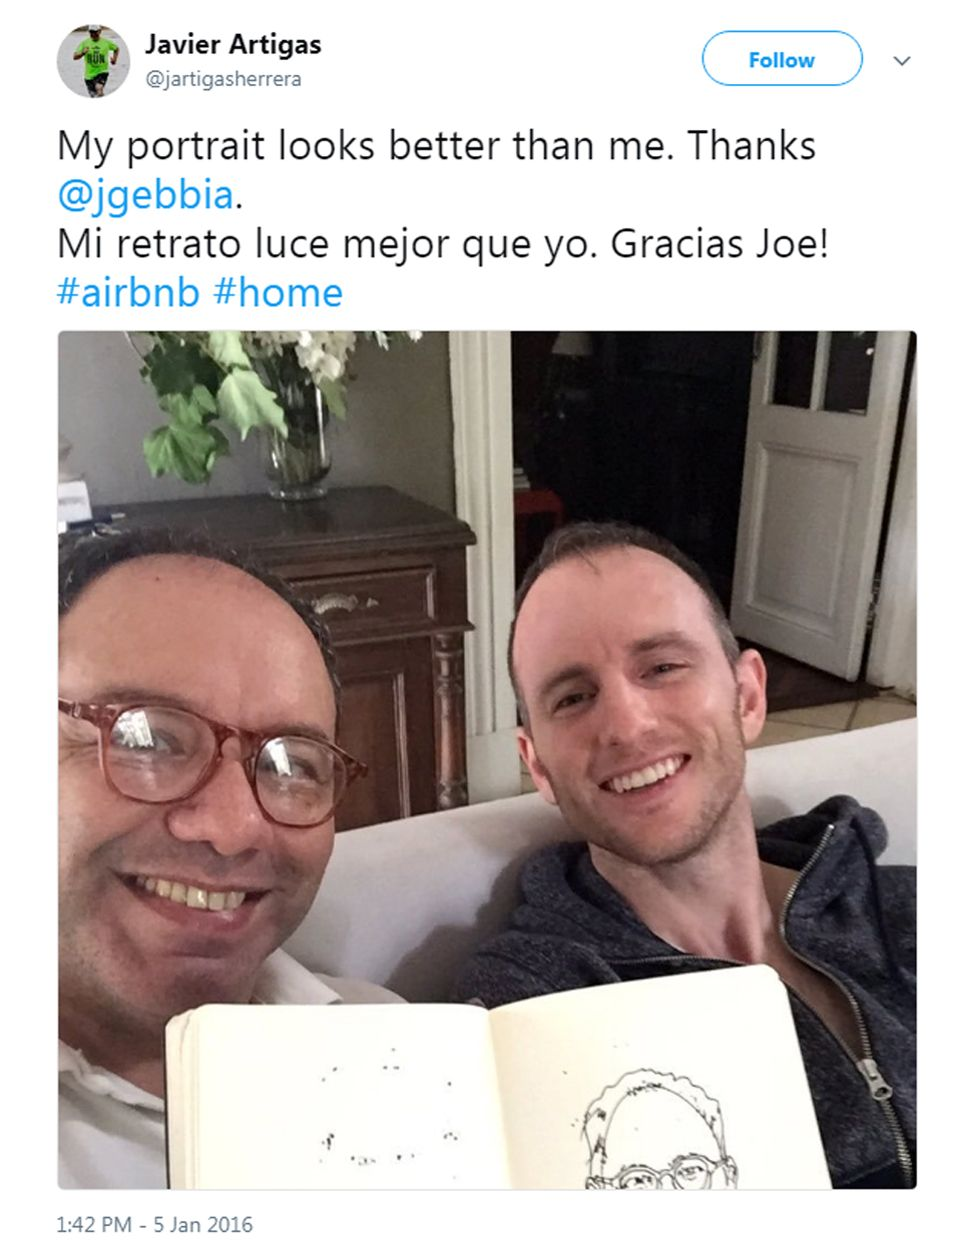 Javier and Gebbia